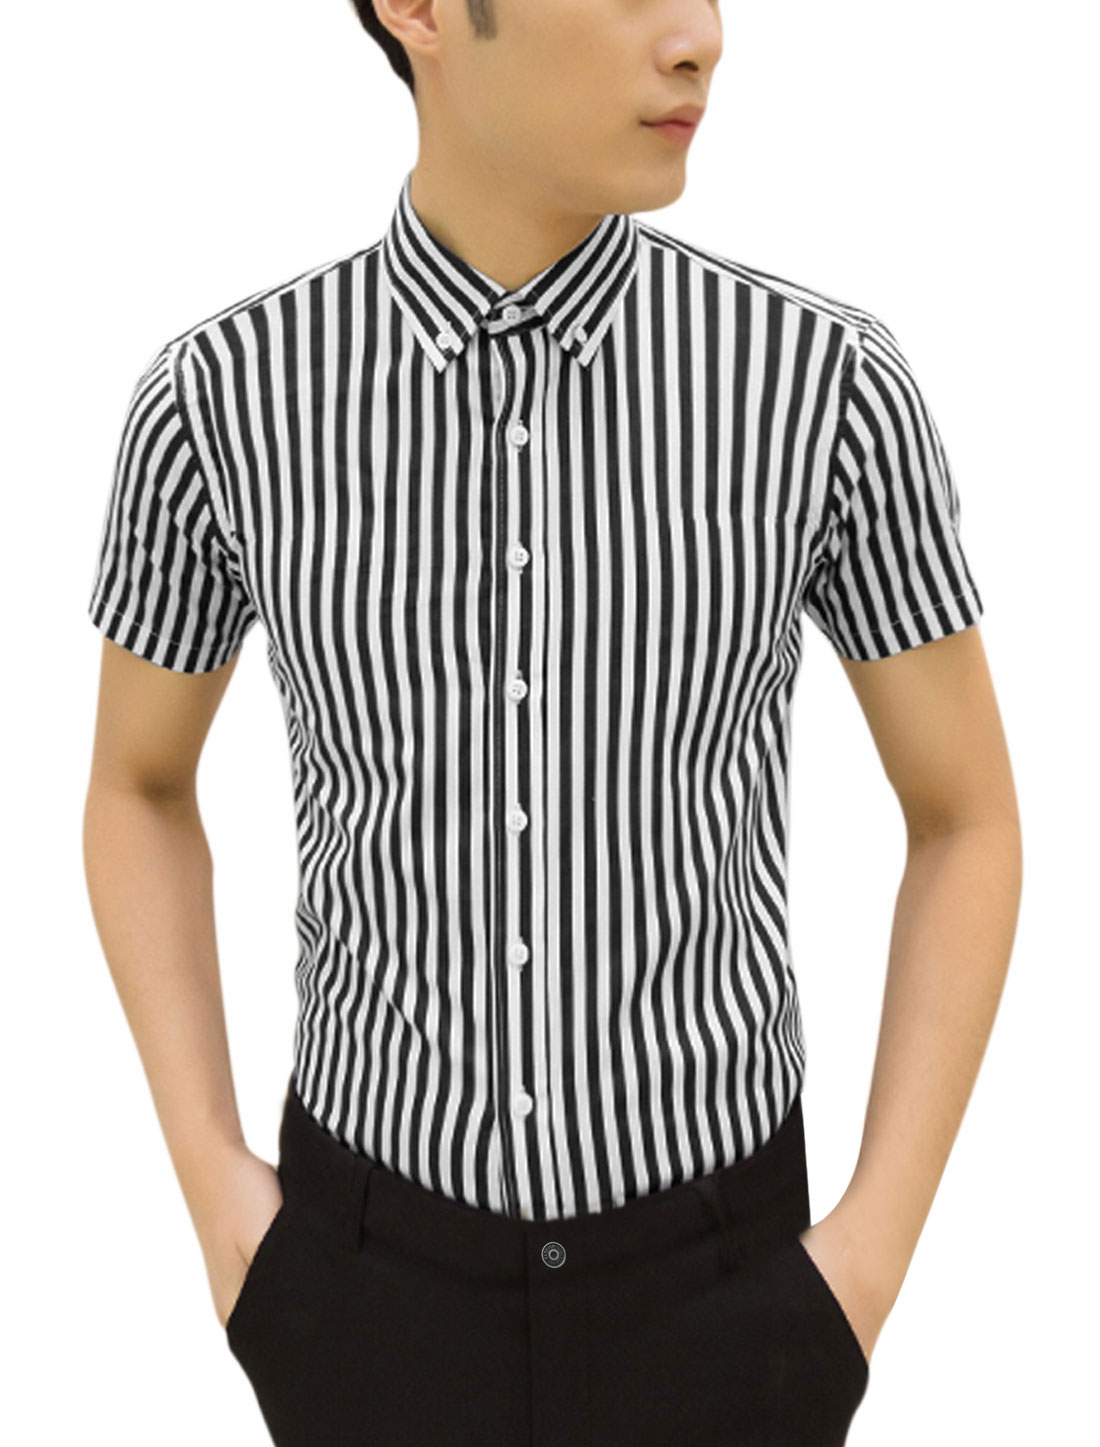 Men Point Collar Short Sleeves Vertical Stripes Casual Shirts Navy Blue White M